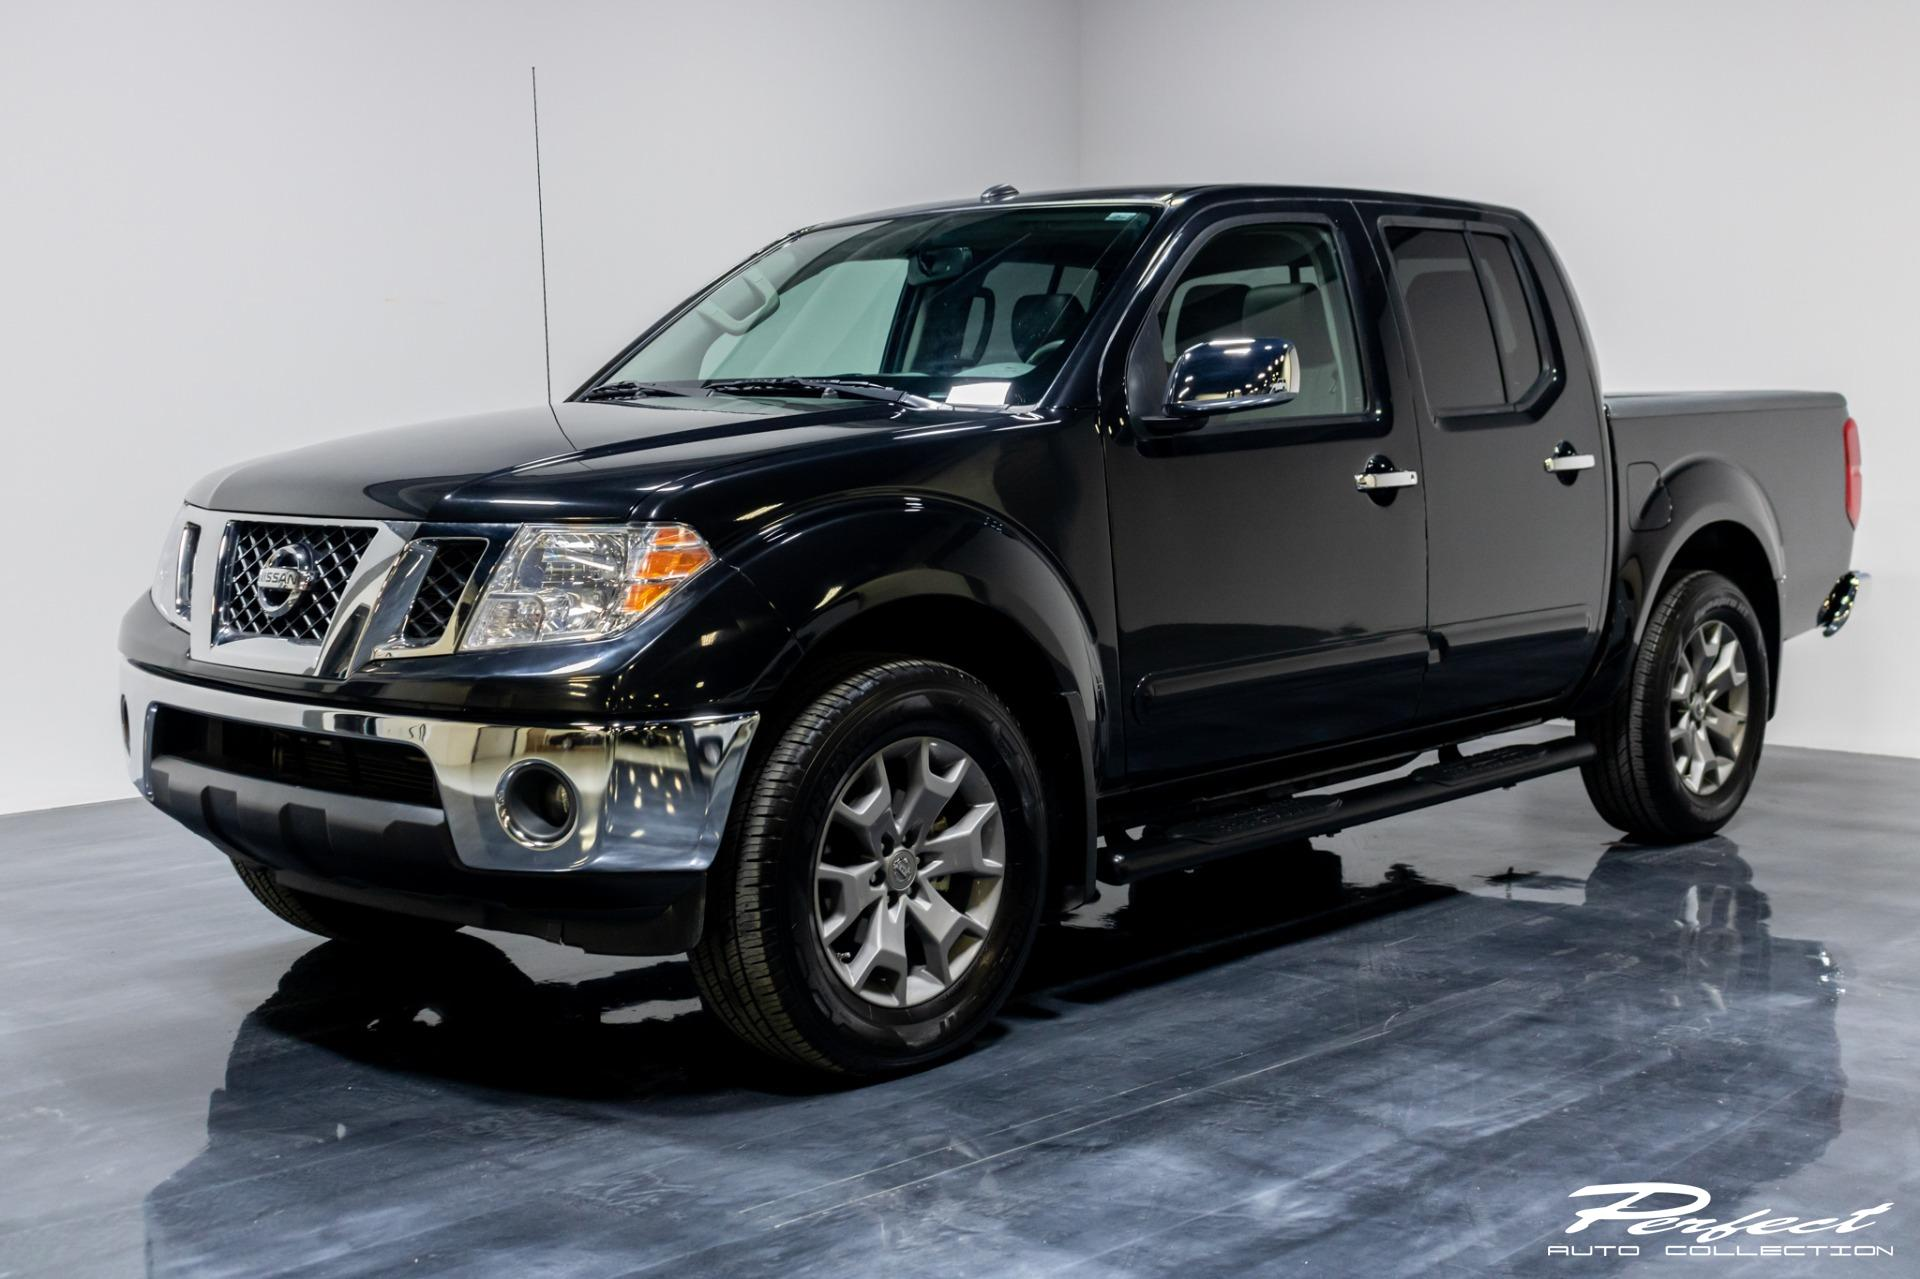 Used 2019 Nissan Frontier Crew Cab SL Pickup 4D 5 ft for sale Sold at Perfect Auto Collection in Akron OH 44310 1